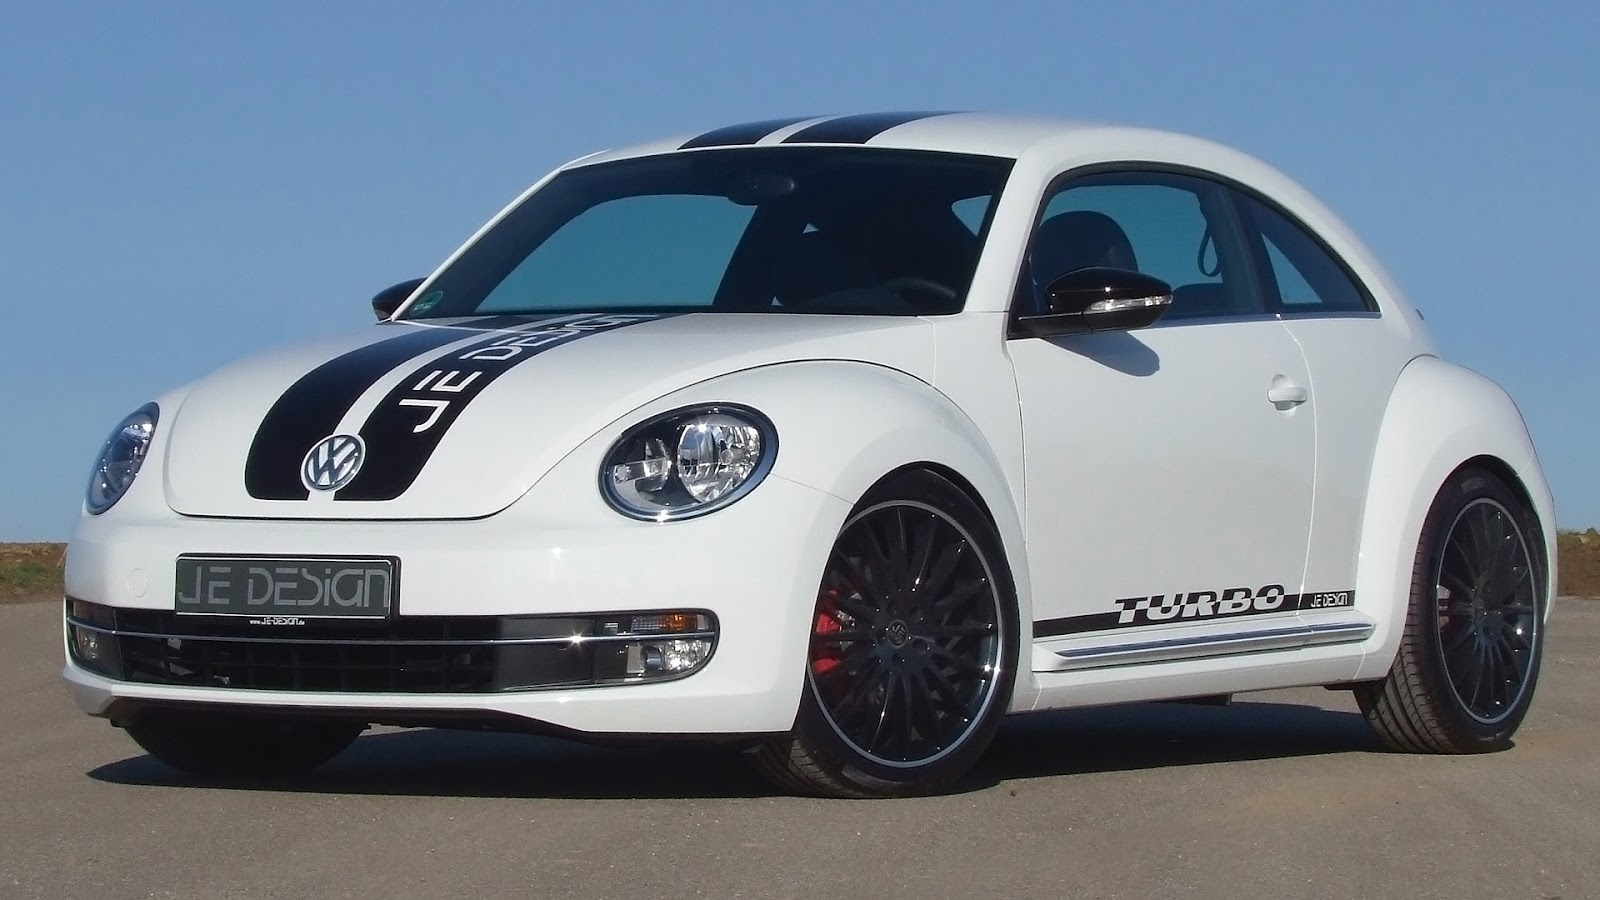 car wallpapers free download 2012 je design volkswagen beetle 2 0 turbo 240 hp 0 62 mph 6 9 s. Black Bedroom Furniture Sets. Home Design Ideas